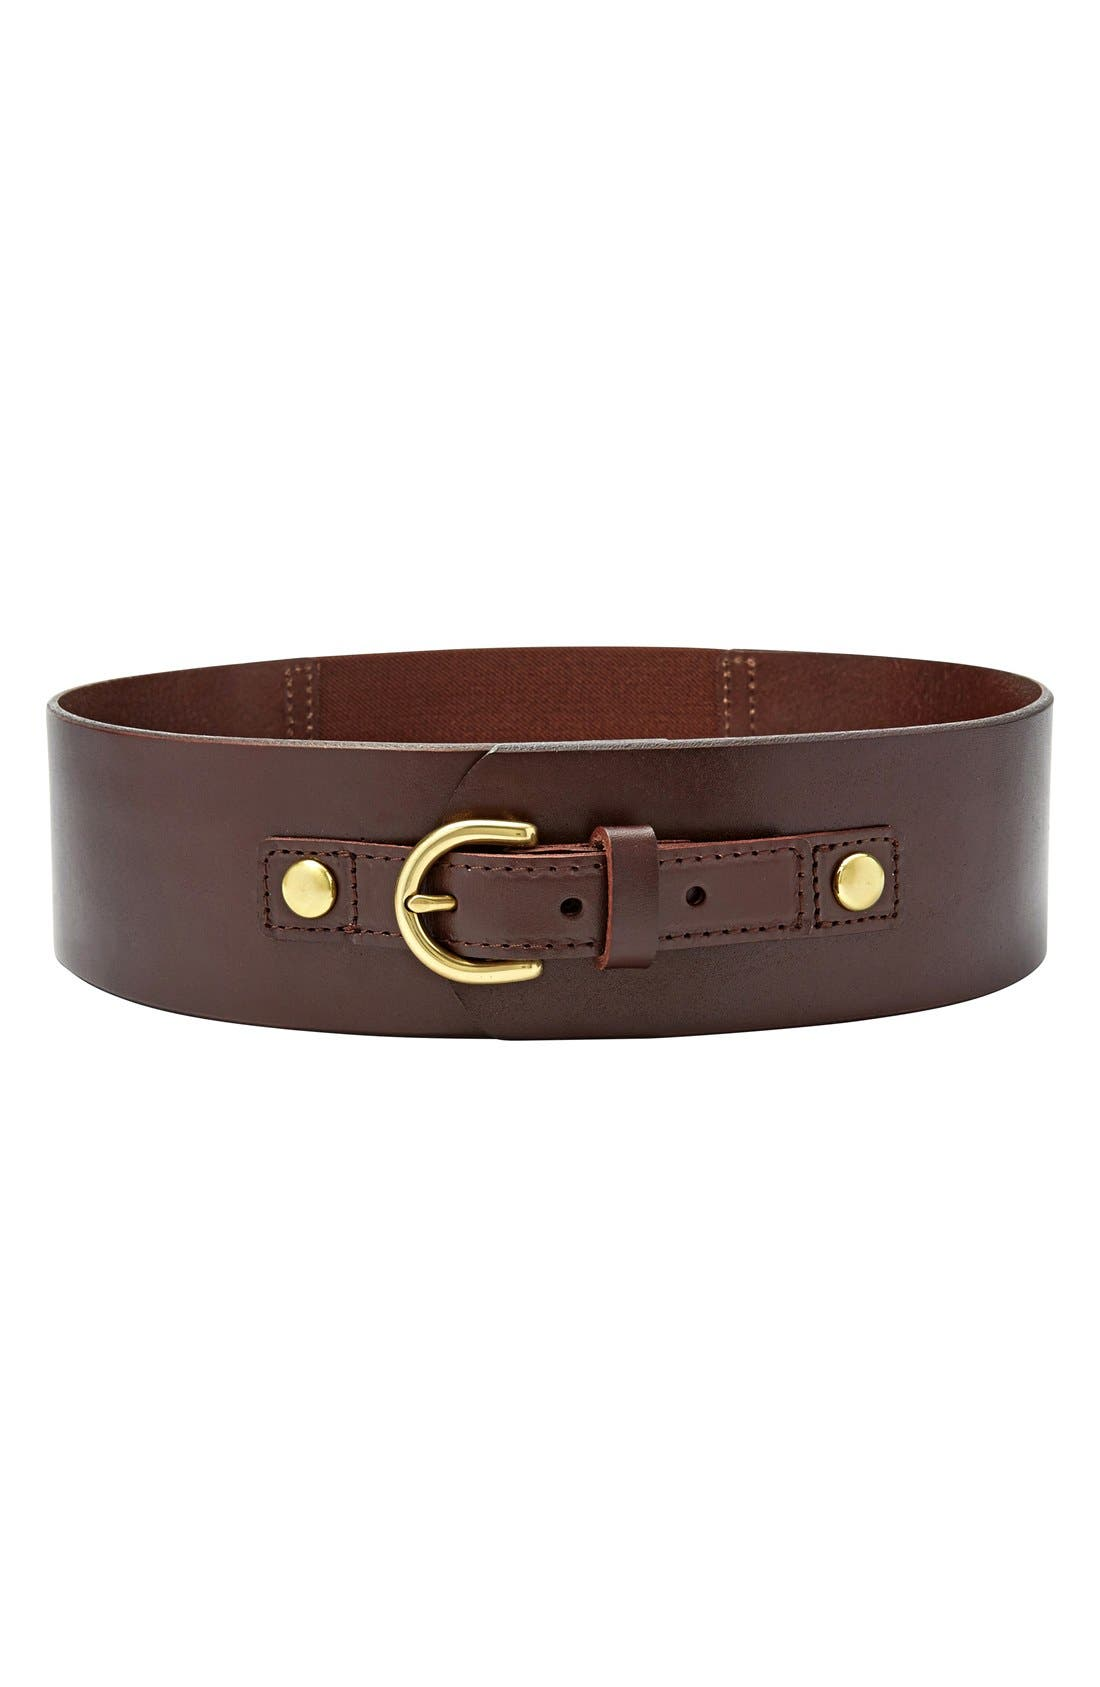 FOSSIL, Wide Leather Belt, Main thumbnail 1, color, 200